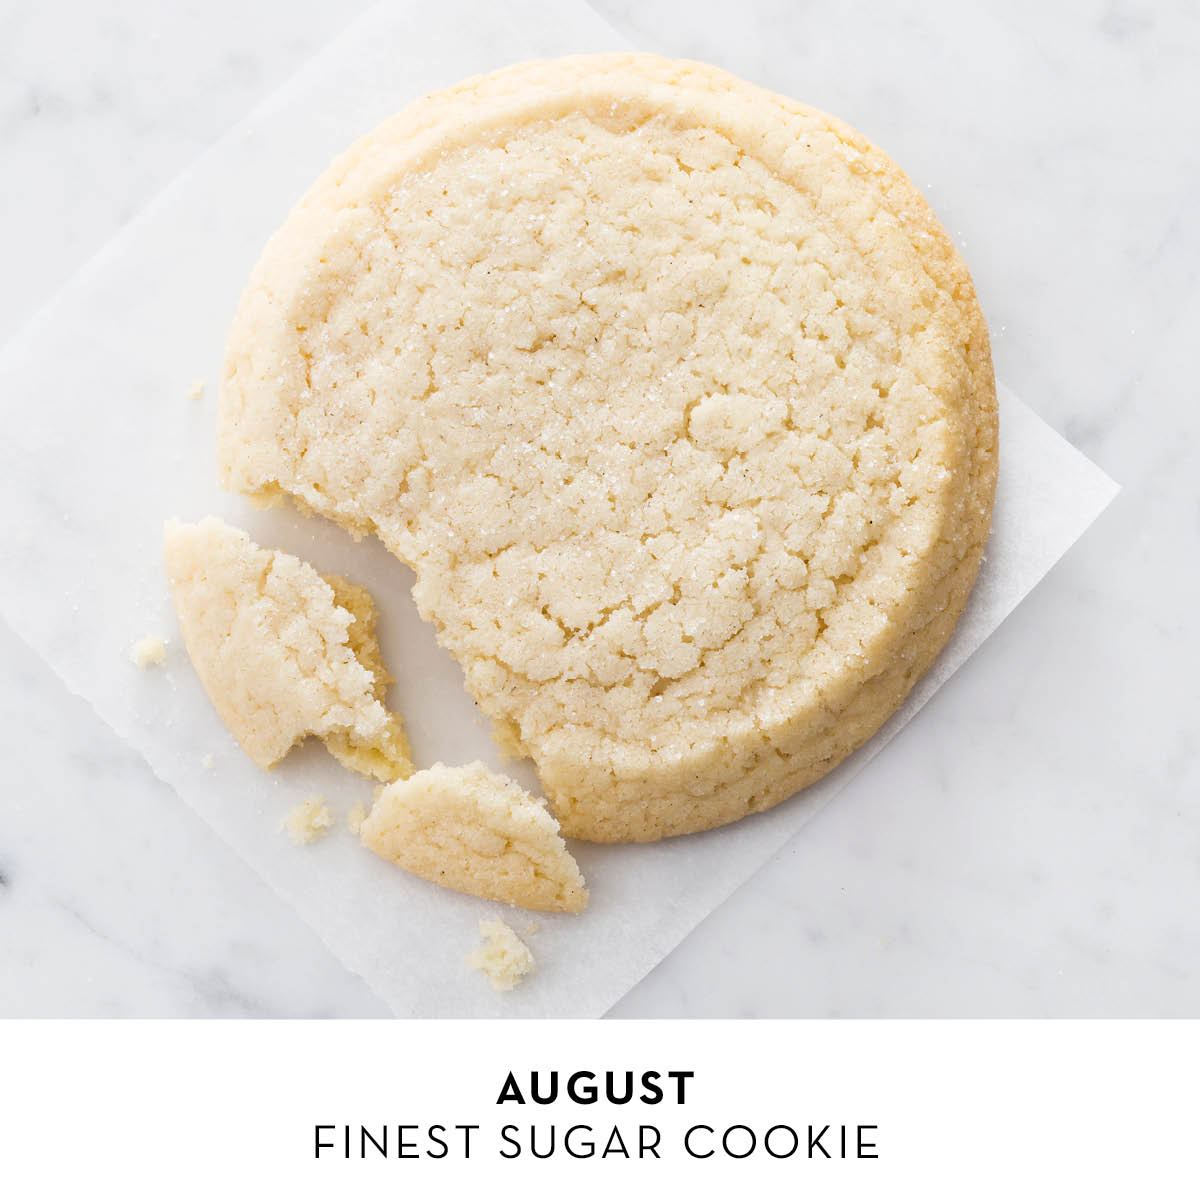 Share the Love Cookie Subscription